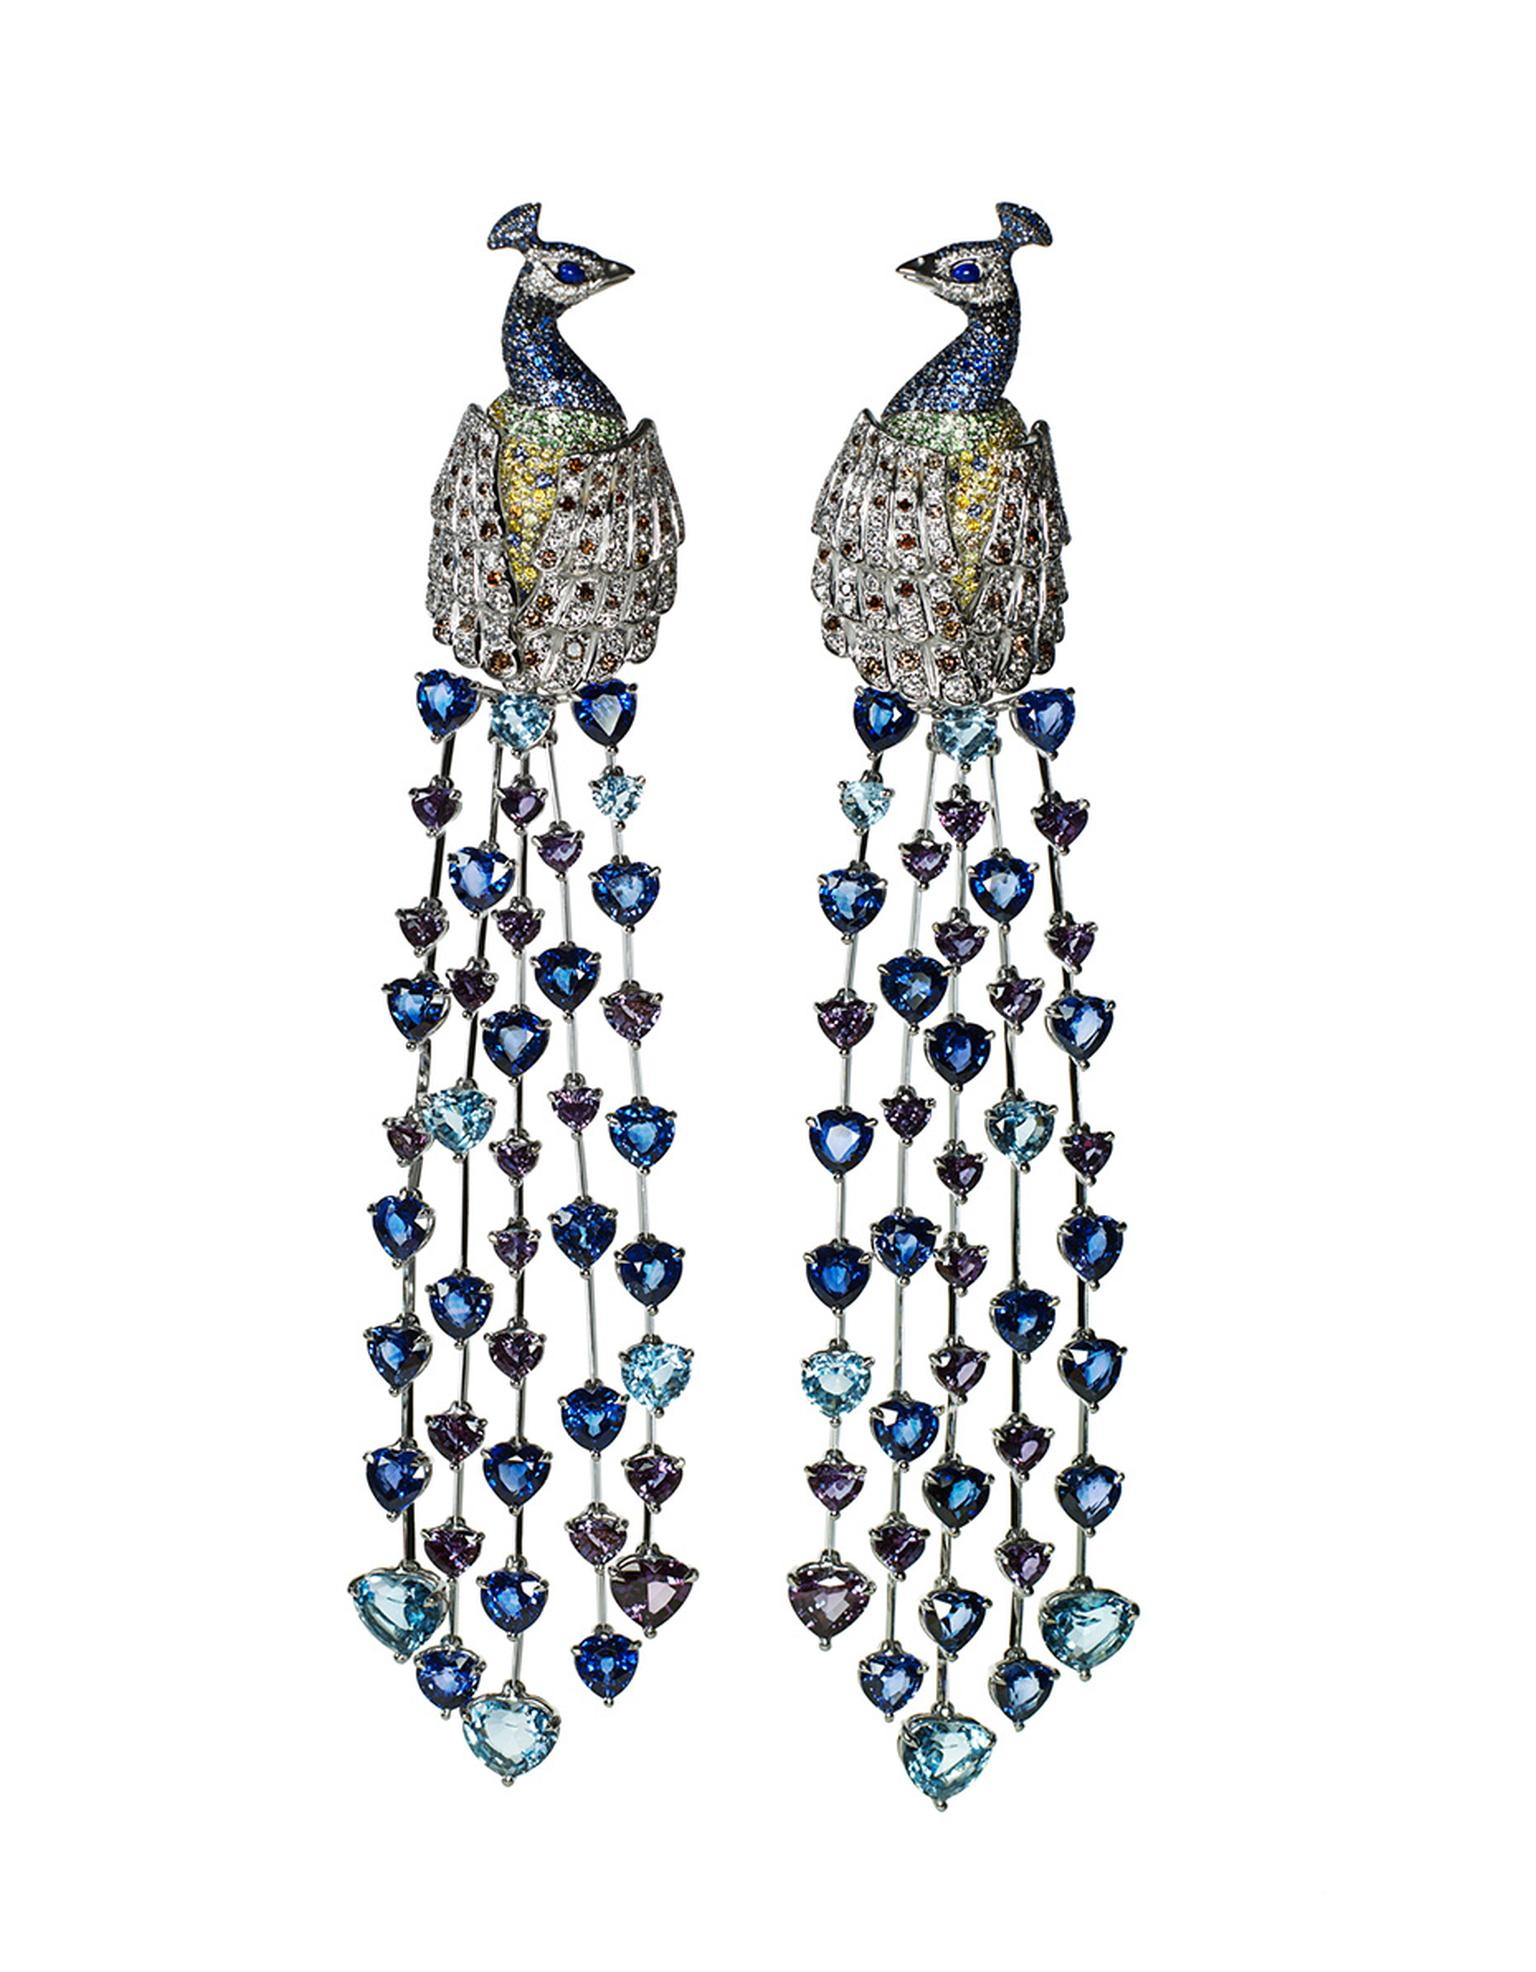 Chopard Animal World An Immortal Peacock earrings featuring heart-shaped sapphire and alexandrite tail feathers